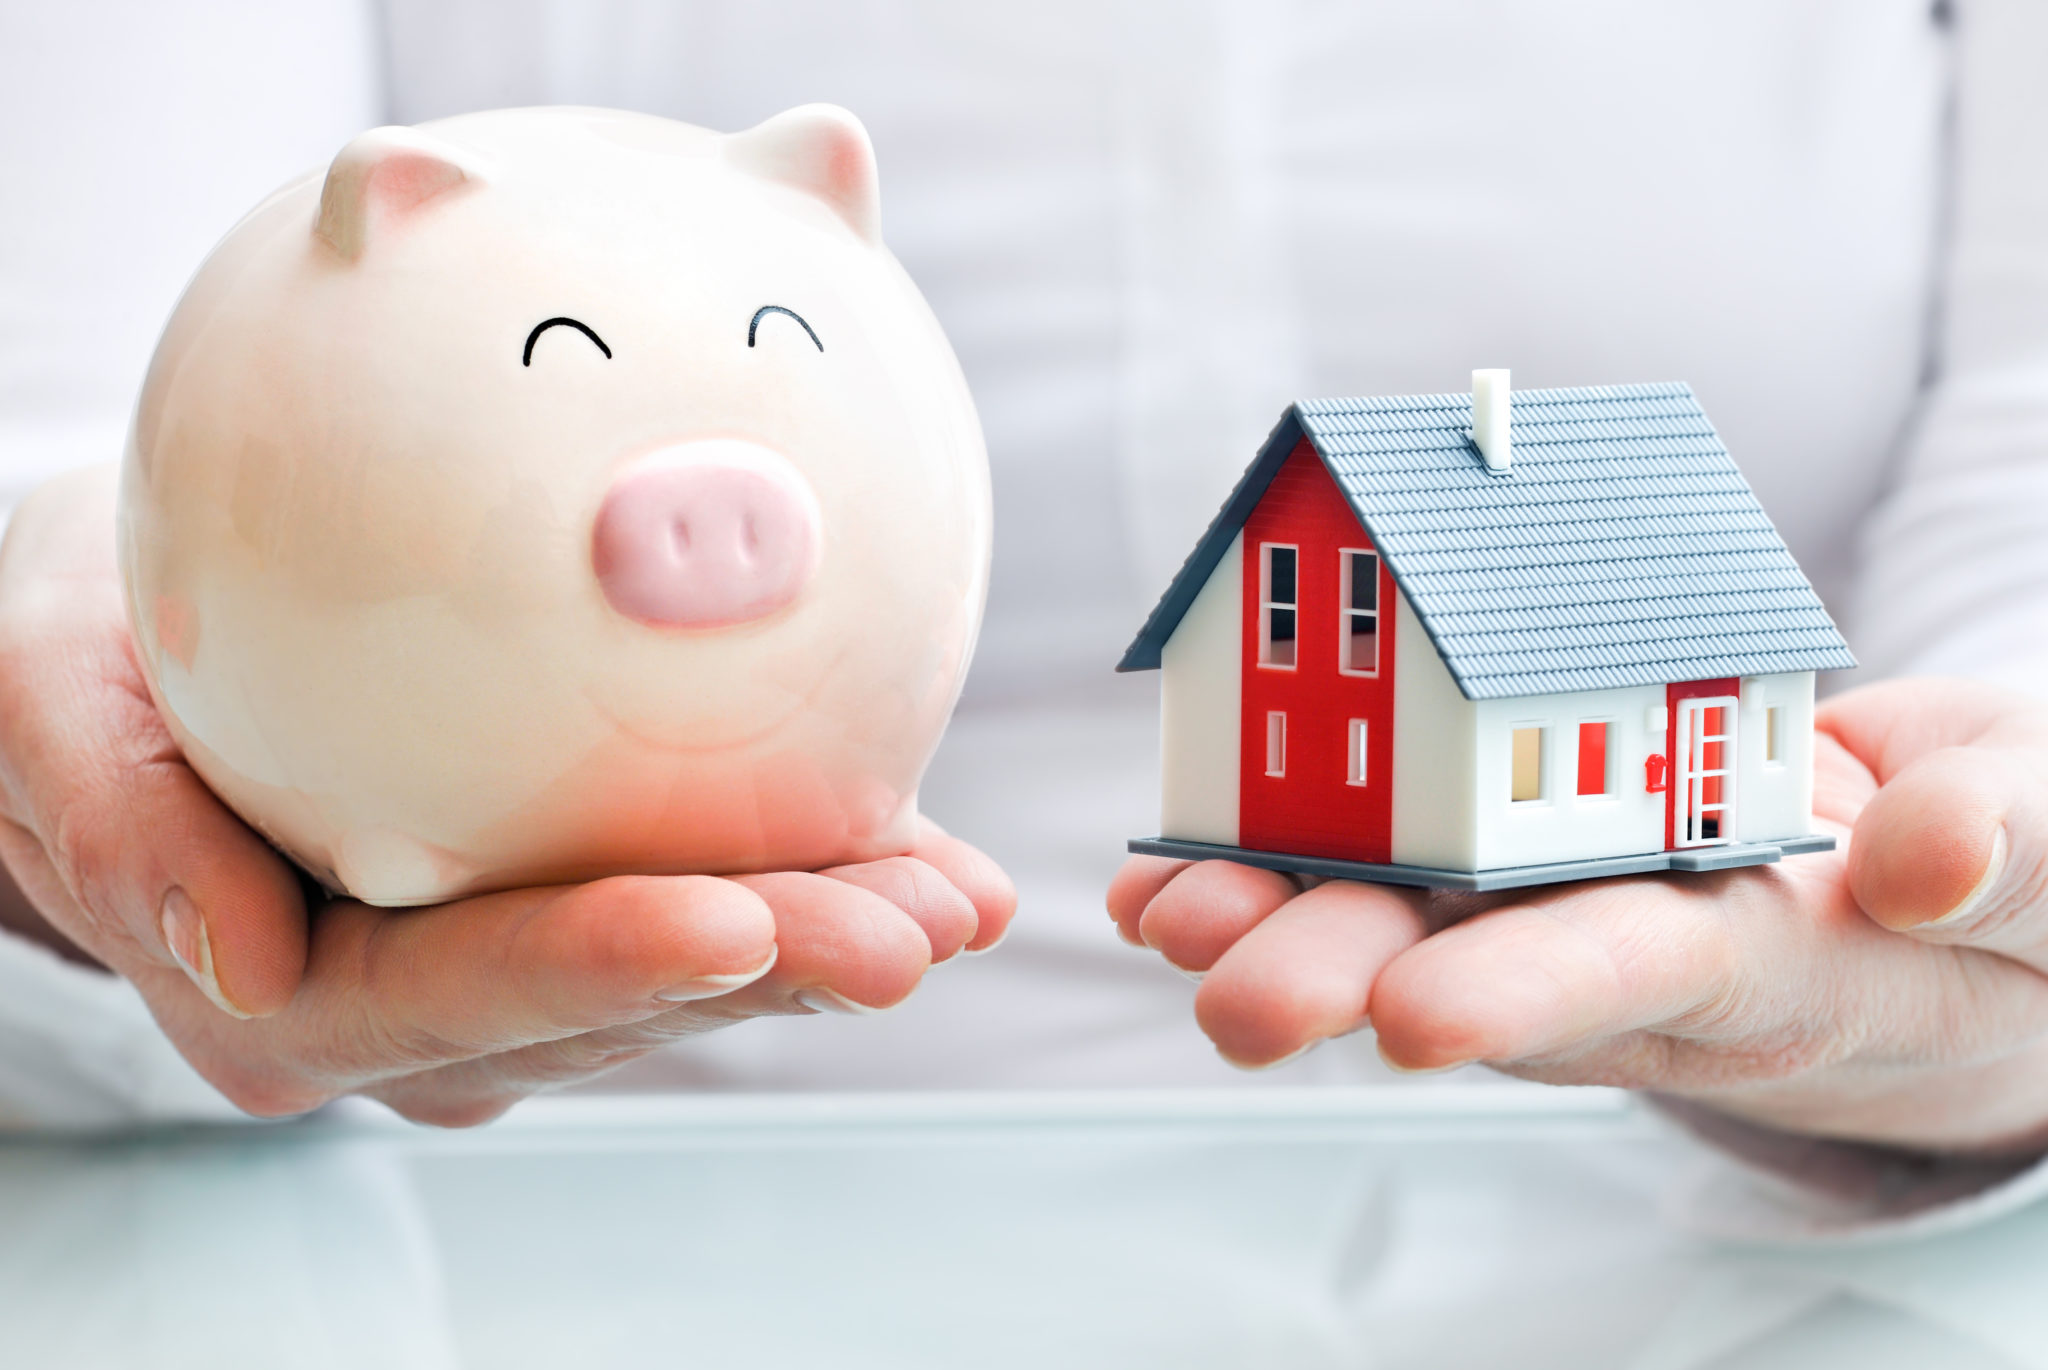 Solid Earth, Planwise partner to help homebuyers find properties that meet their financial goals